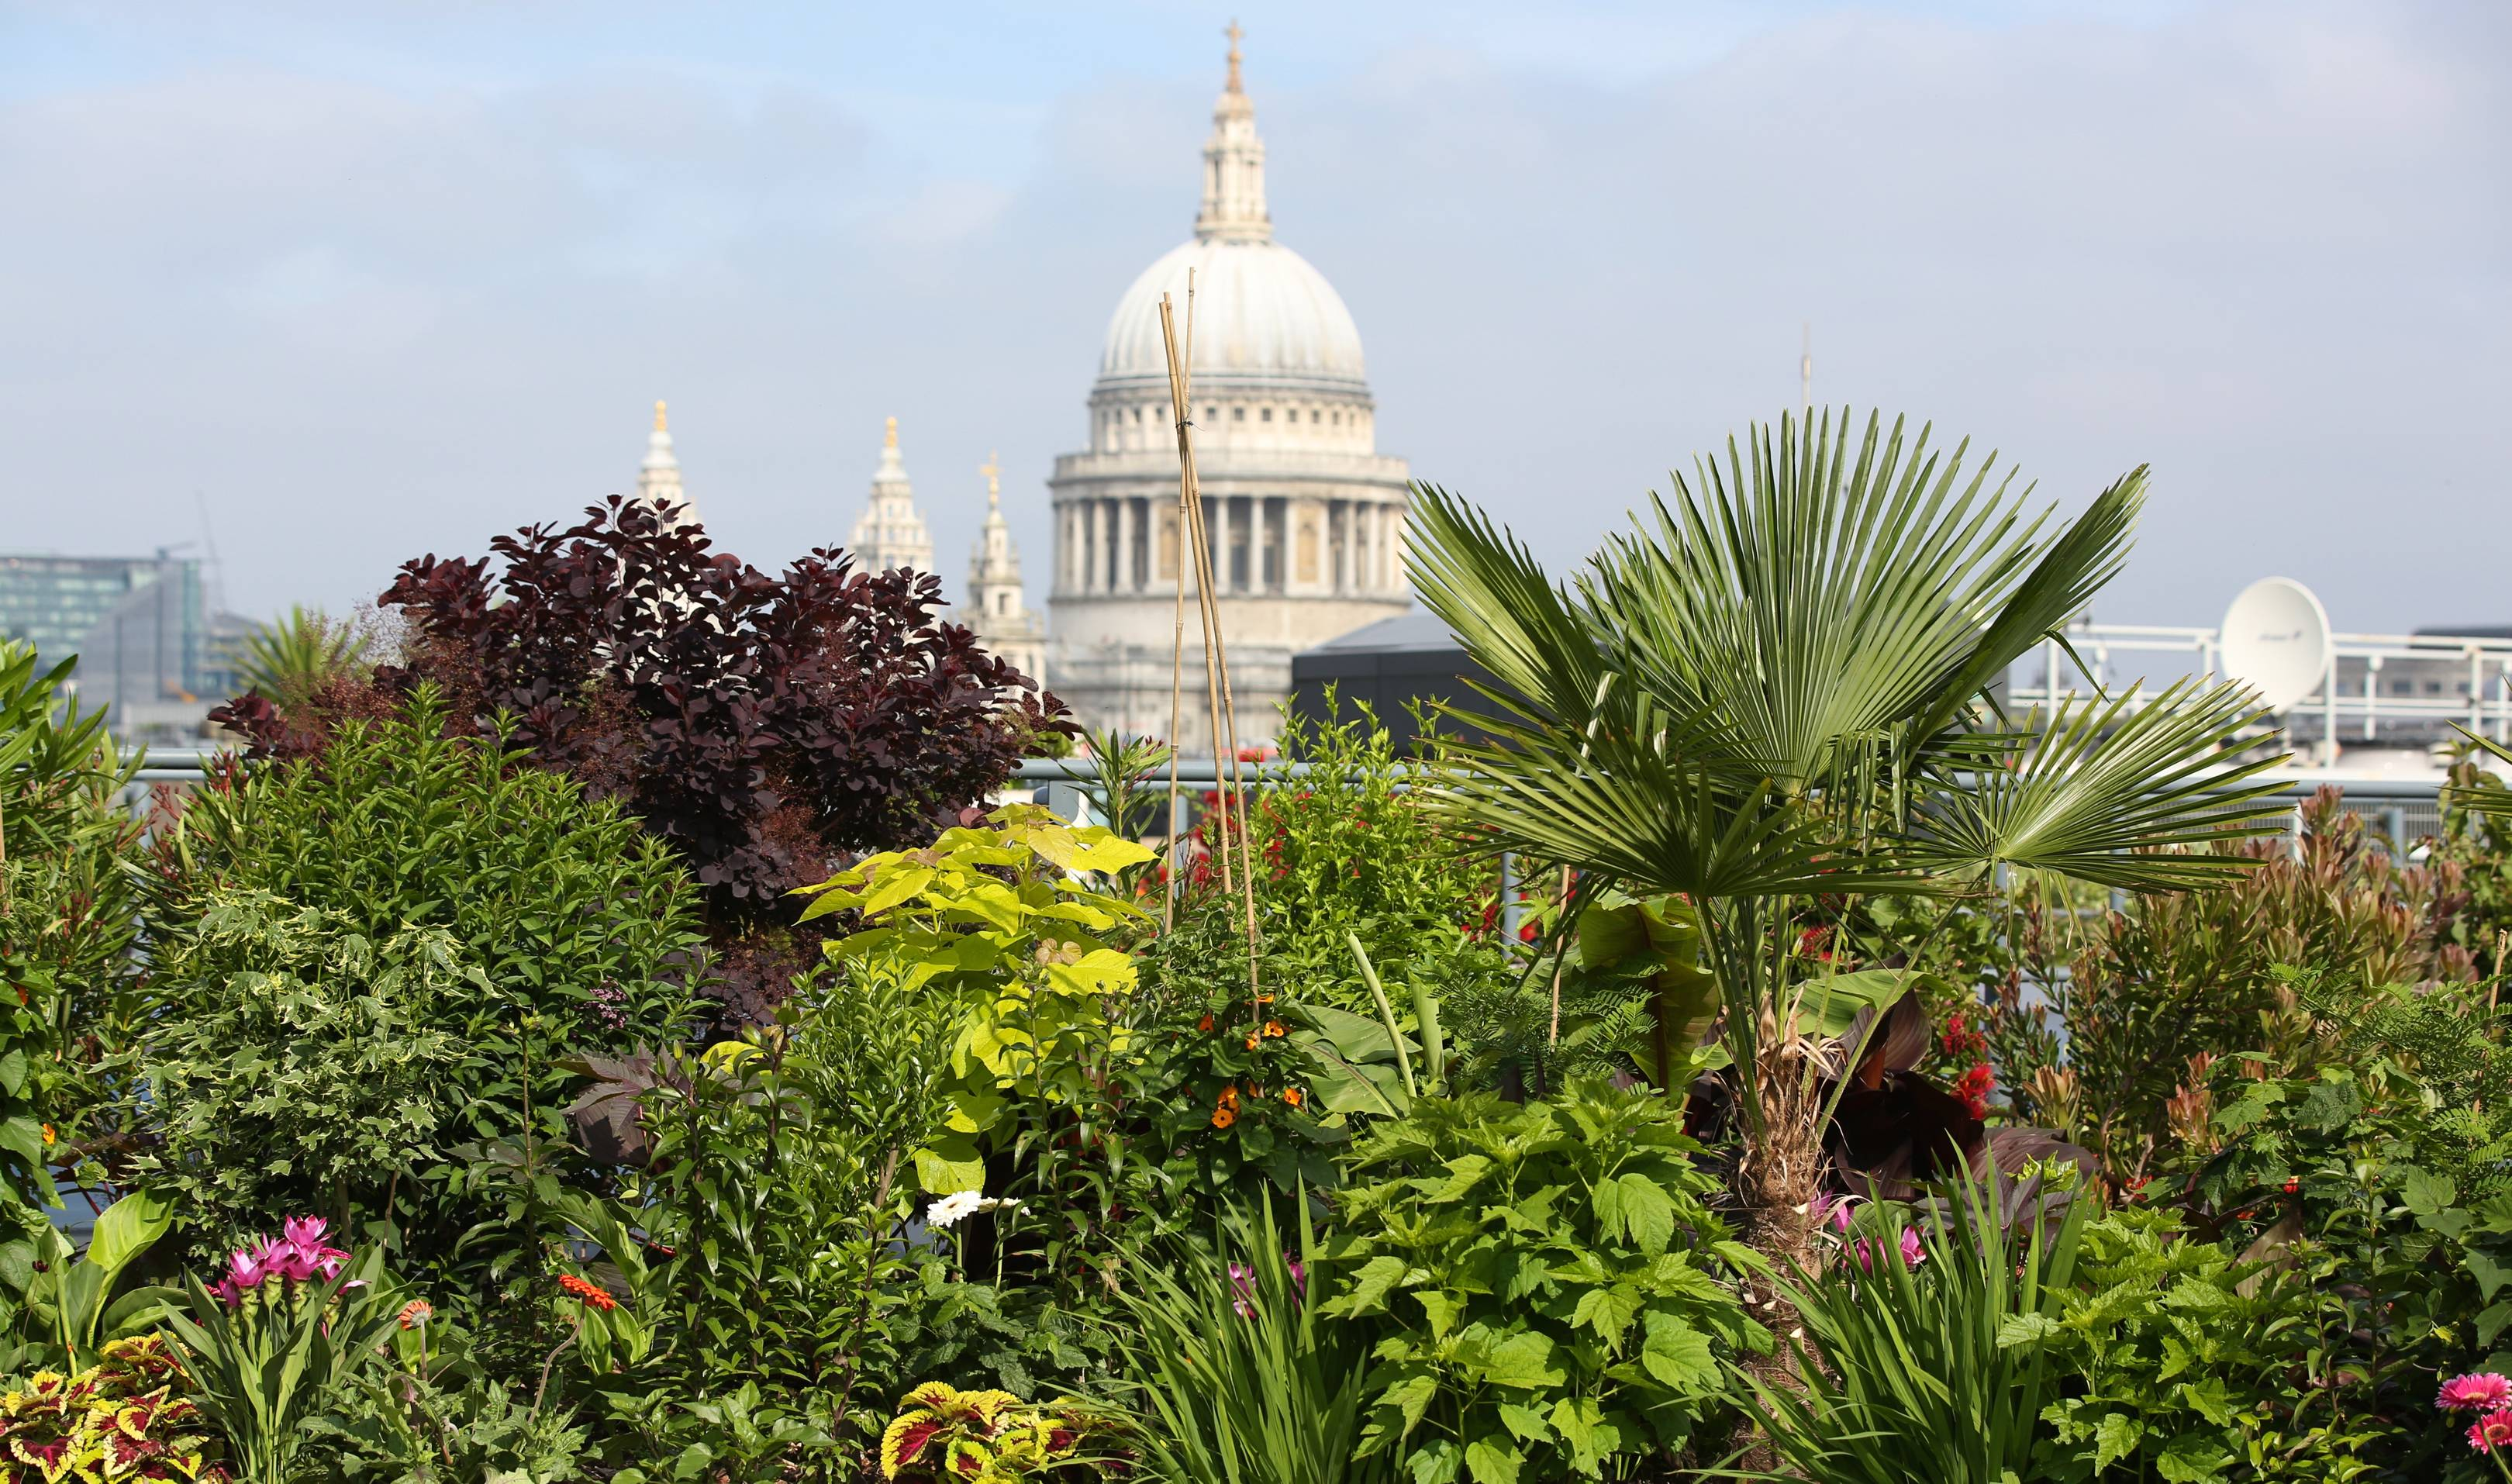 London's private gardens are throwing their doors wide open this weekend